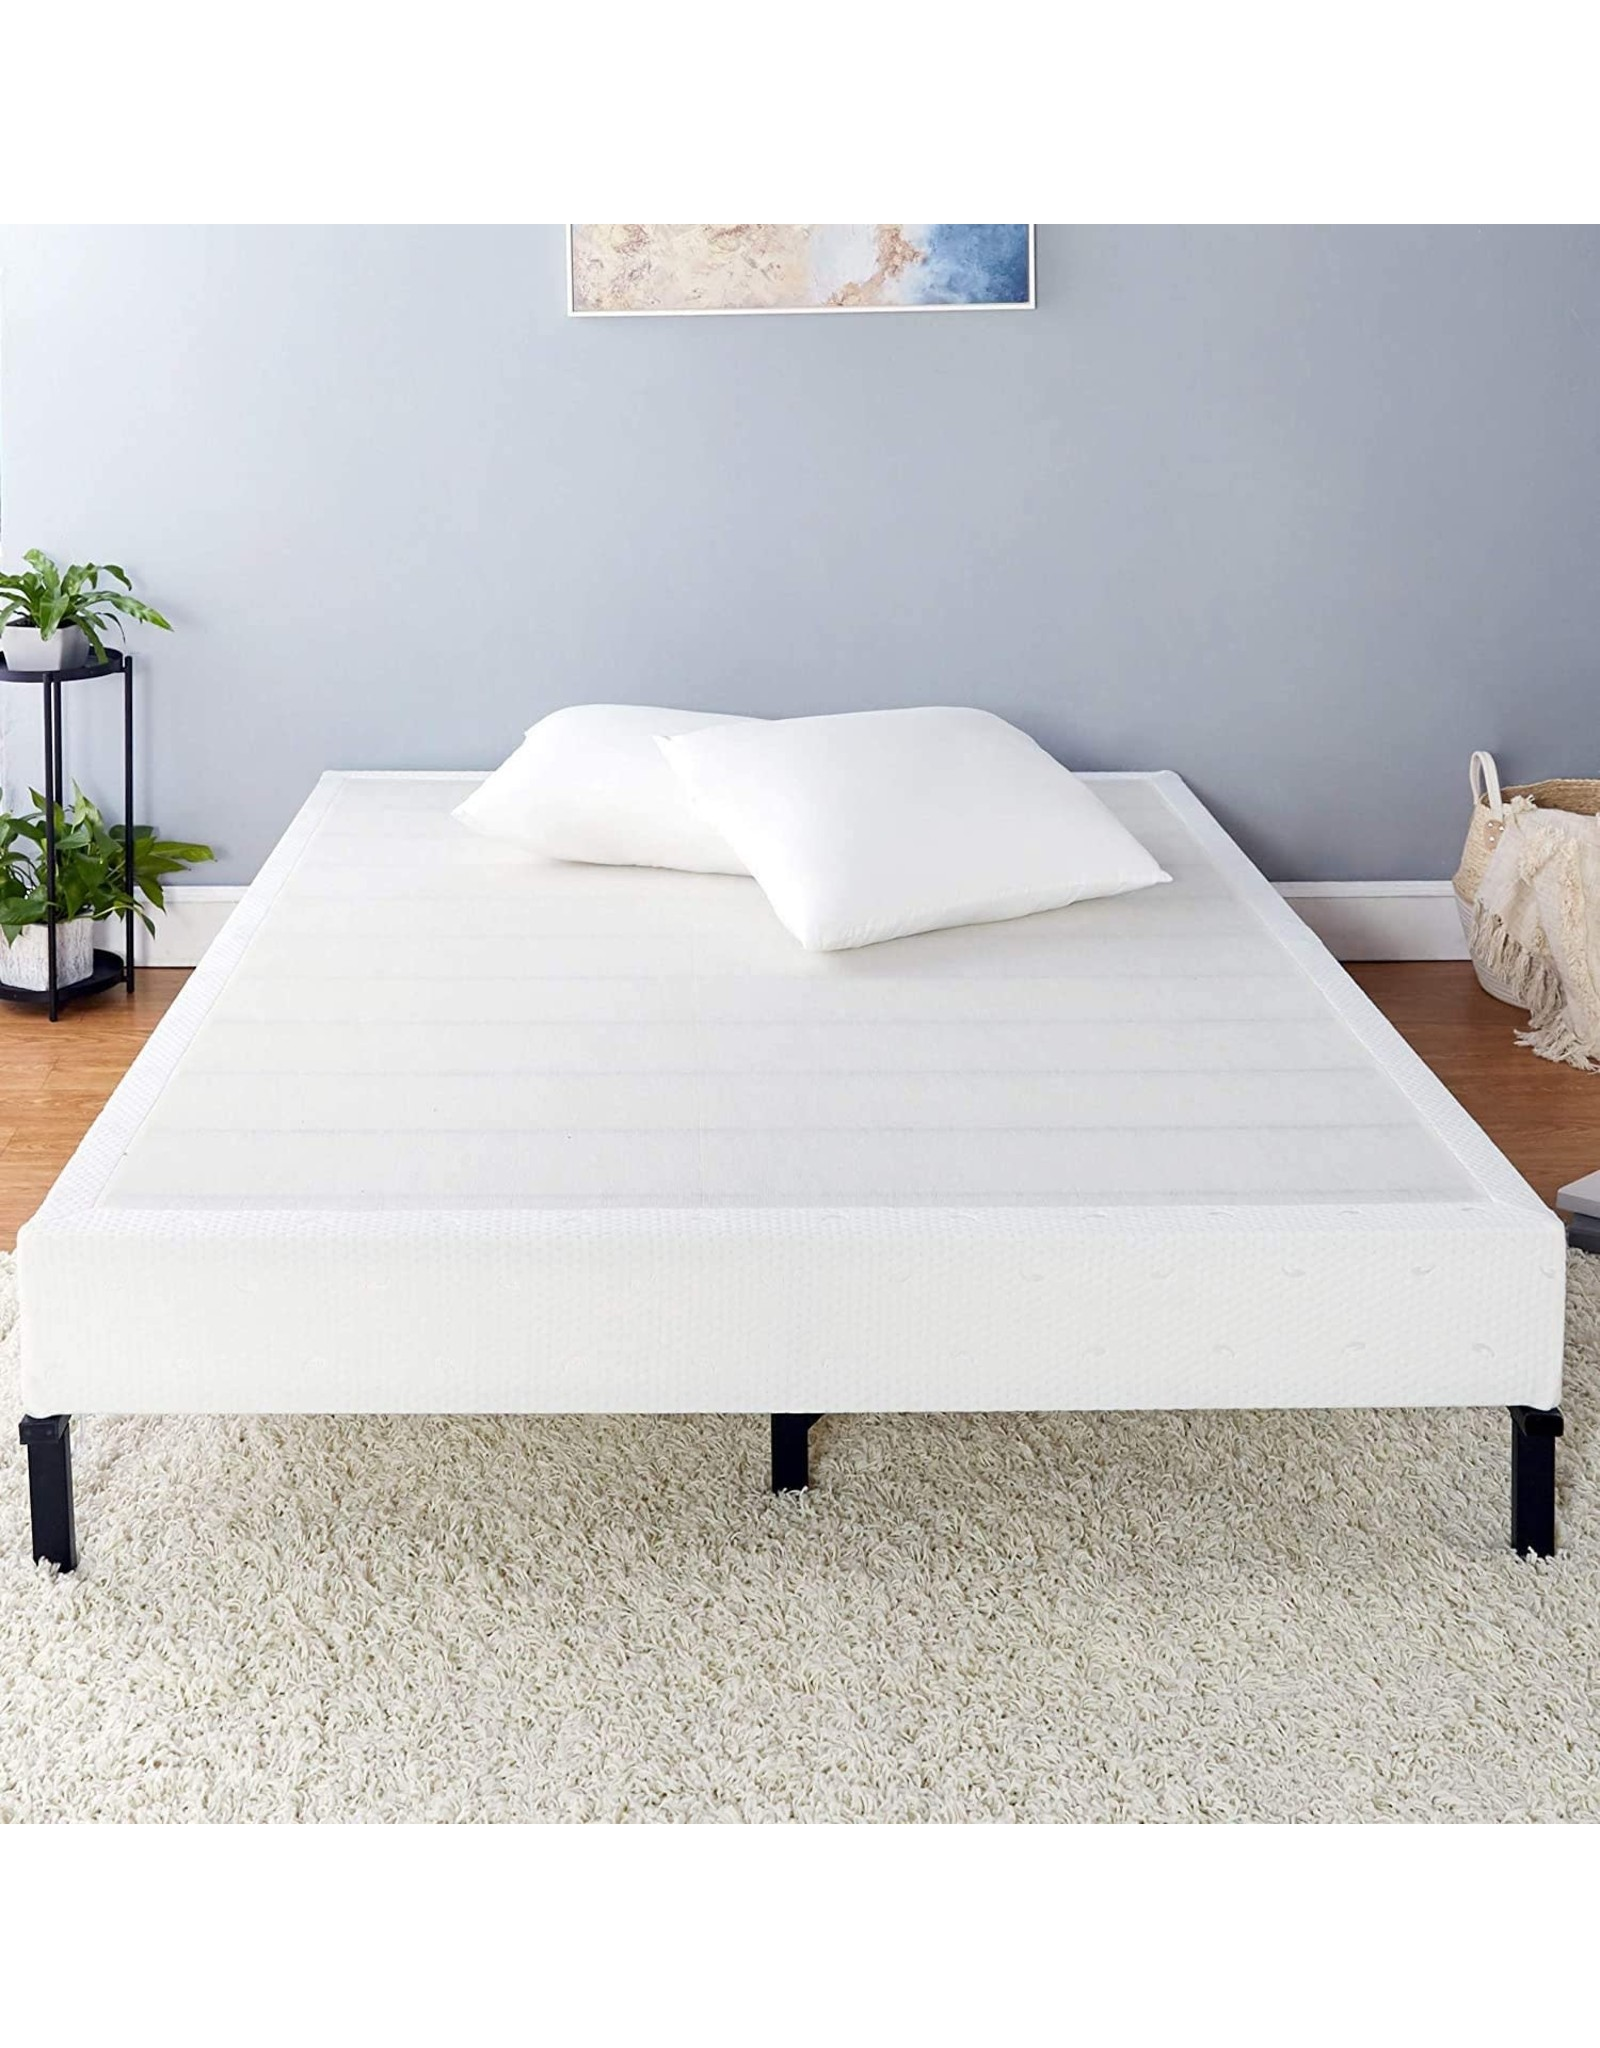 Amazon Basics Basics Mattress Foundation / Smart Box Spring for Cal King Size Bed, Tool-Free Easy Assembly - 9-Inch, Cal King